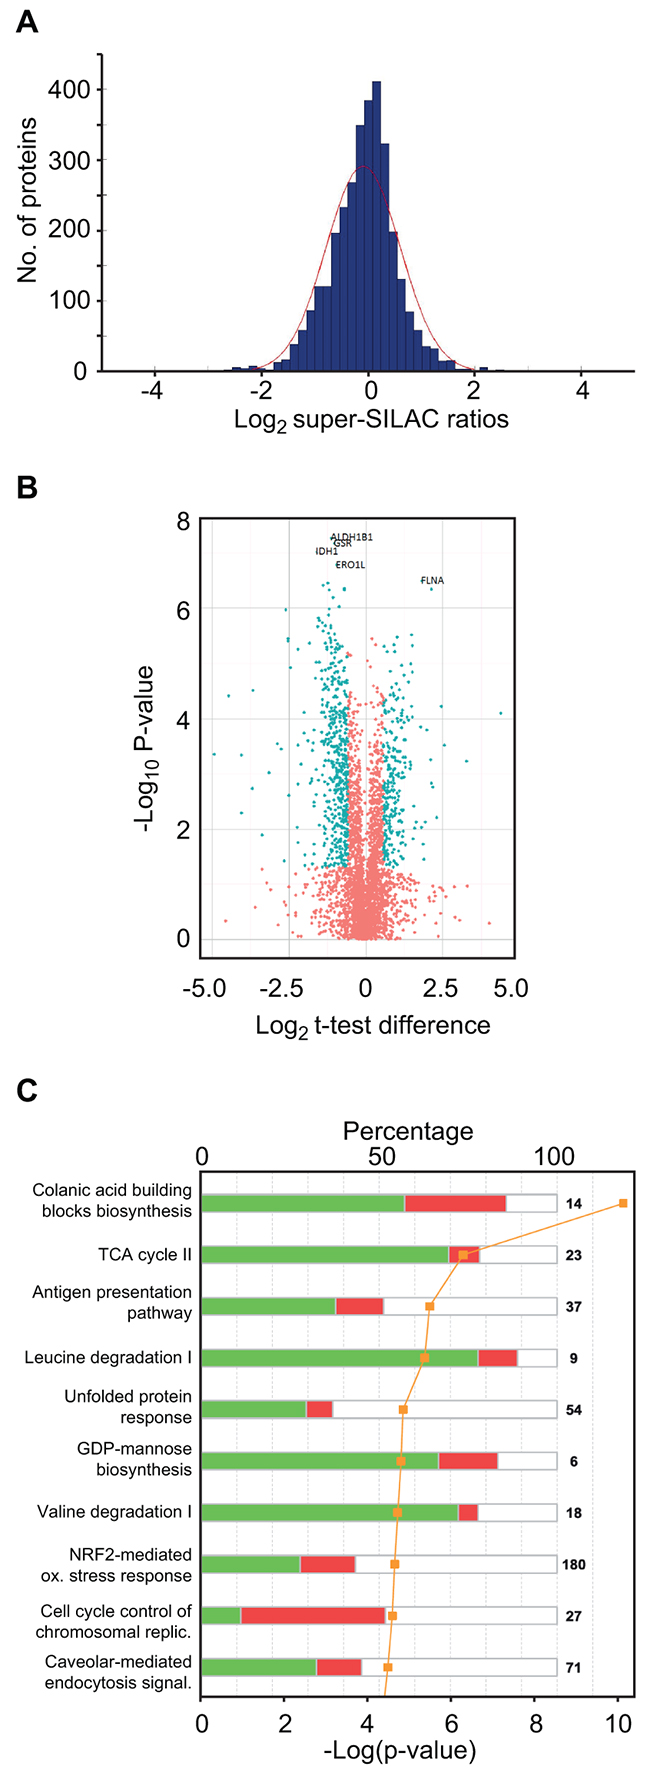 Super-SILAC quantitative profiling and pathway analysis of differentially expressed proteins.